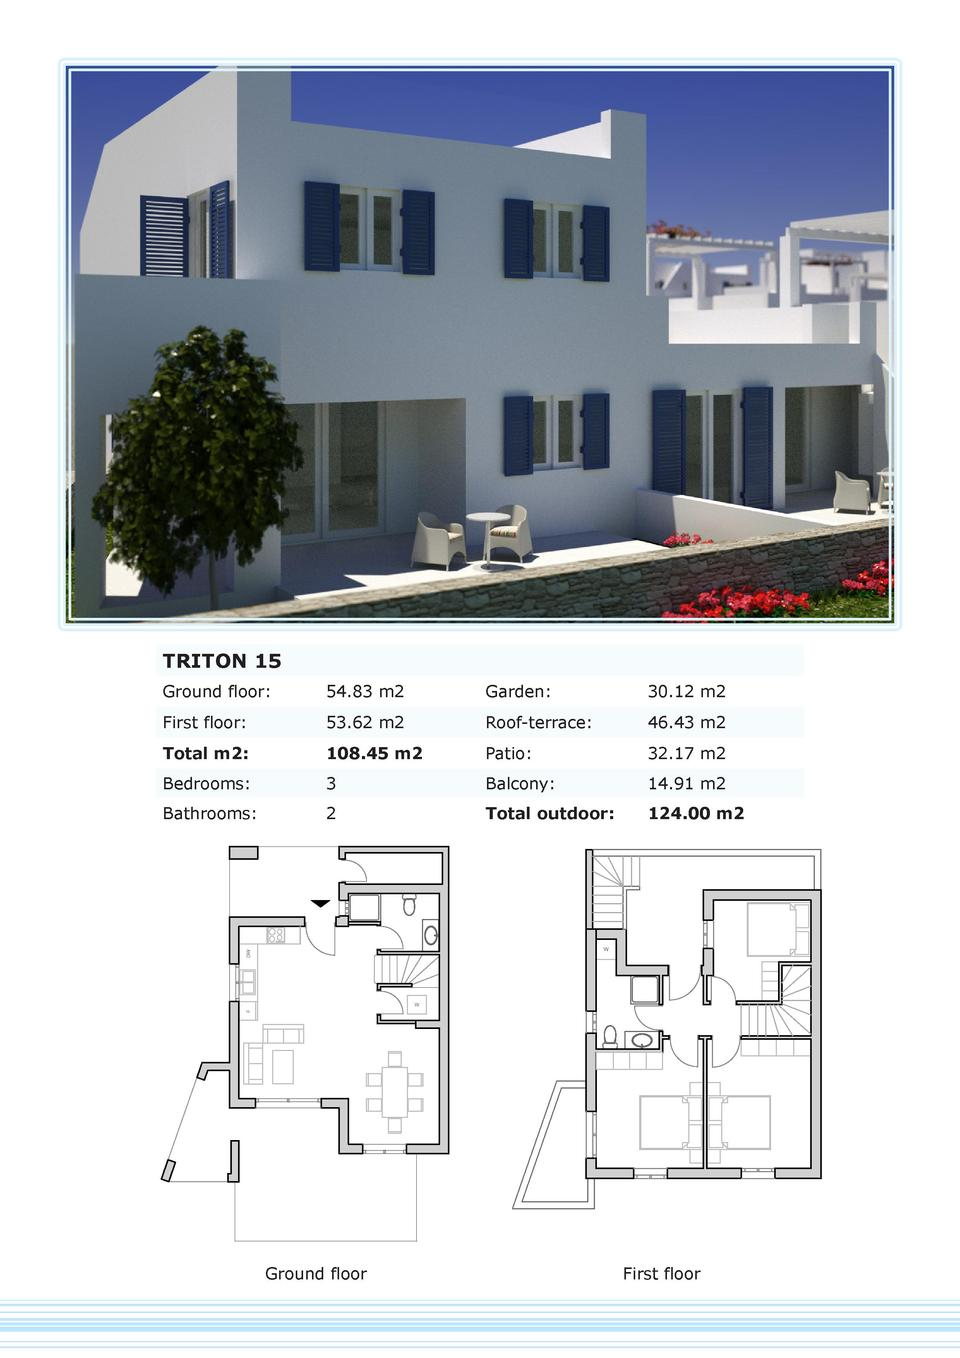 TRITON 15 Ground floor   54.83 m2  Garden   30.12 m2  First floor   53.62 m2  Roof-terrace   46.43 m2  Total m2   108.45 m...